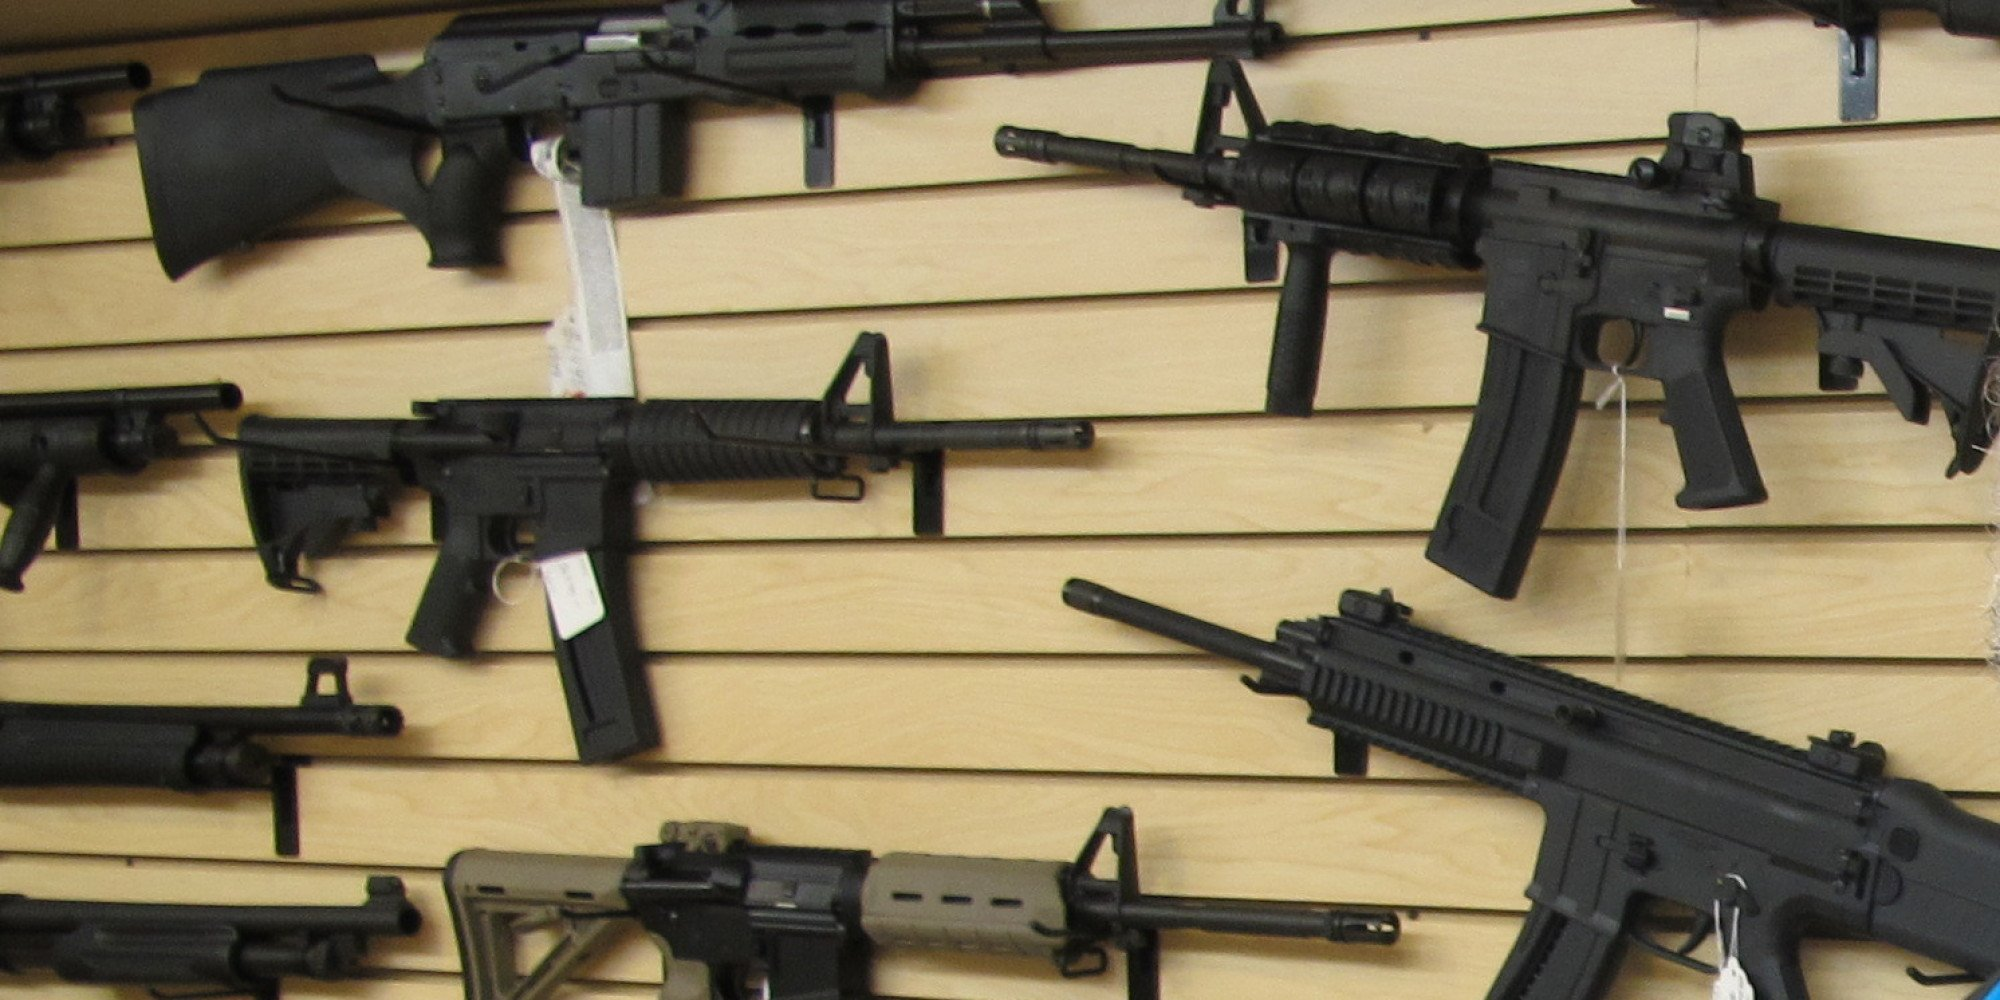 """On Thursday afternoon, Sen. Martin Heinrich (D-N.M.) appeared on MSNBC to discuss """"common sense changes"""" on gun control. Heinrich stated that a minimum age requirement would prevent young people from buying """"an assault rifle, an AR-15, or other gas-assisted, receiver firearms when they can't buy a simple handgun."""" That's right, he said """"other gas-assisted, receiver …"""